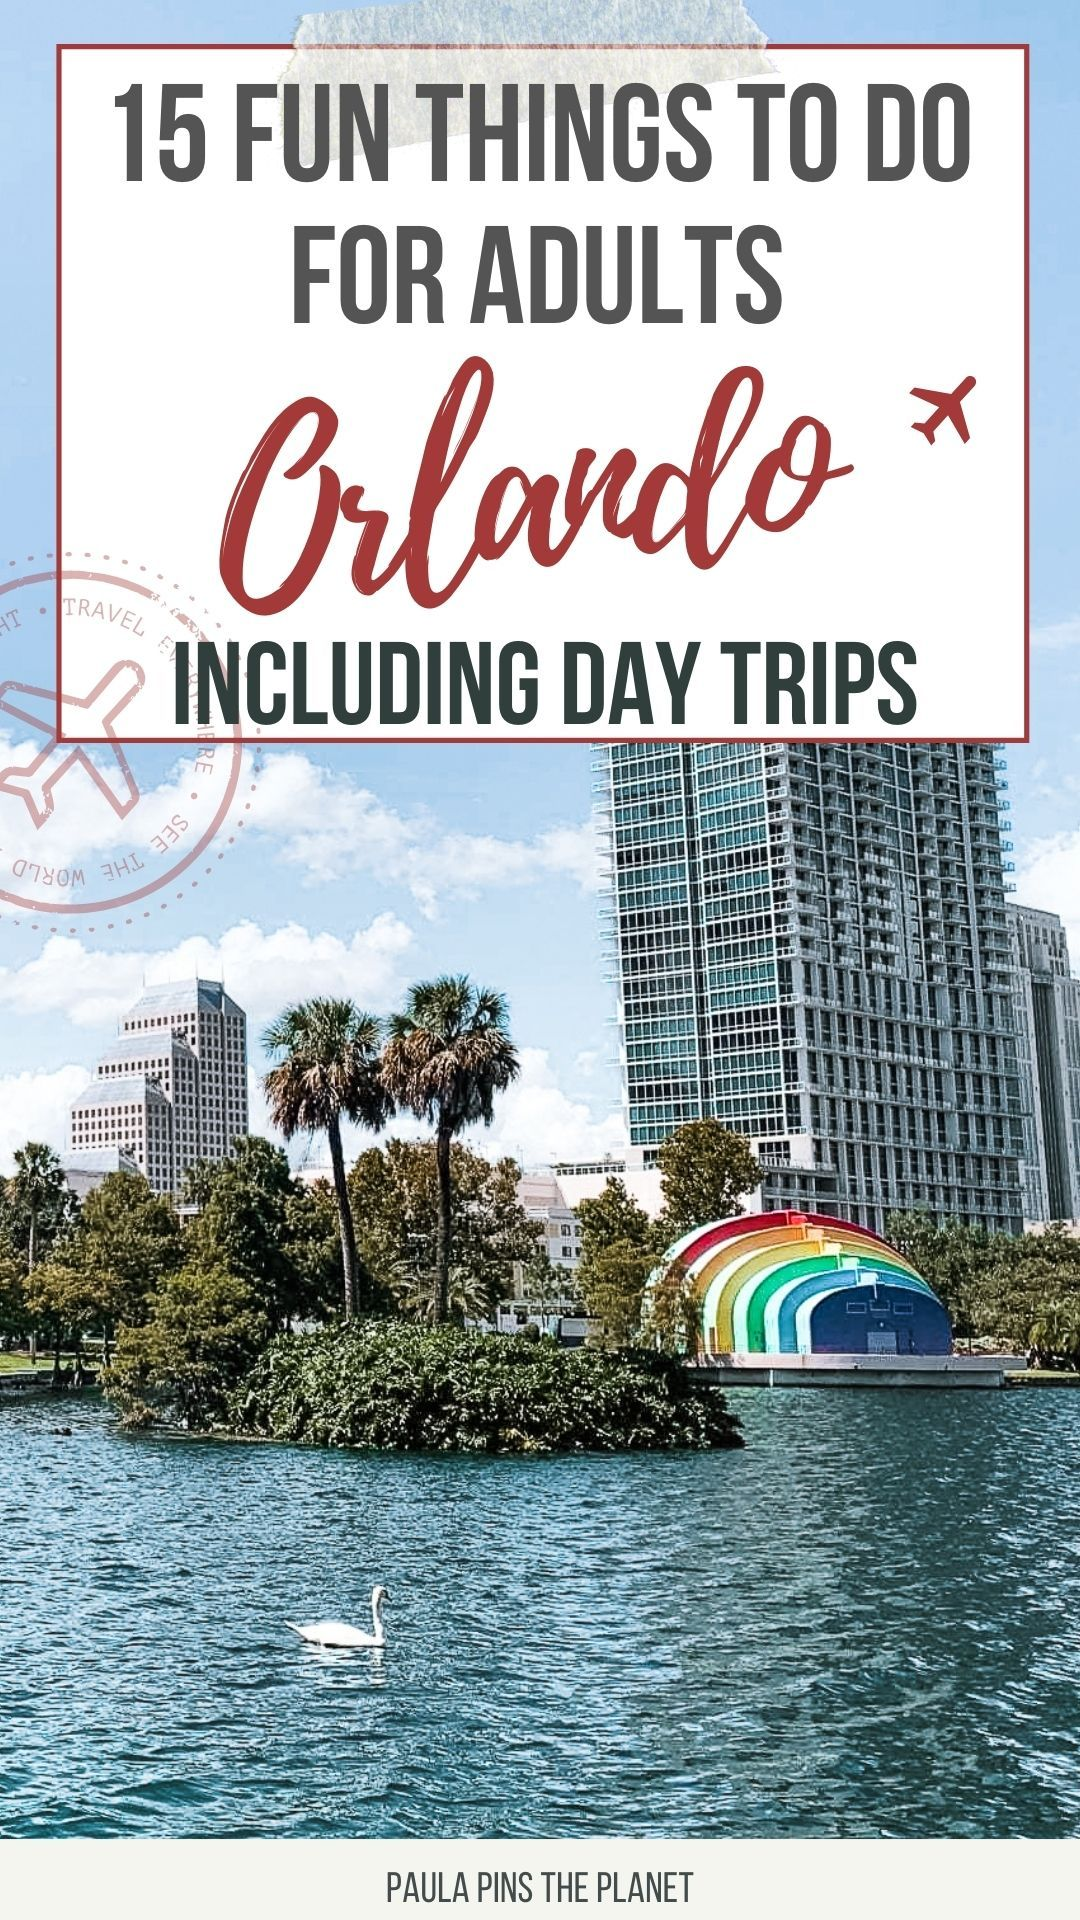 Florida 15 Fun Things To Do In Orlando For Adults Including Day Trips From Orlando Paula Pins The Planet Orlando Travel Trip Day Trips